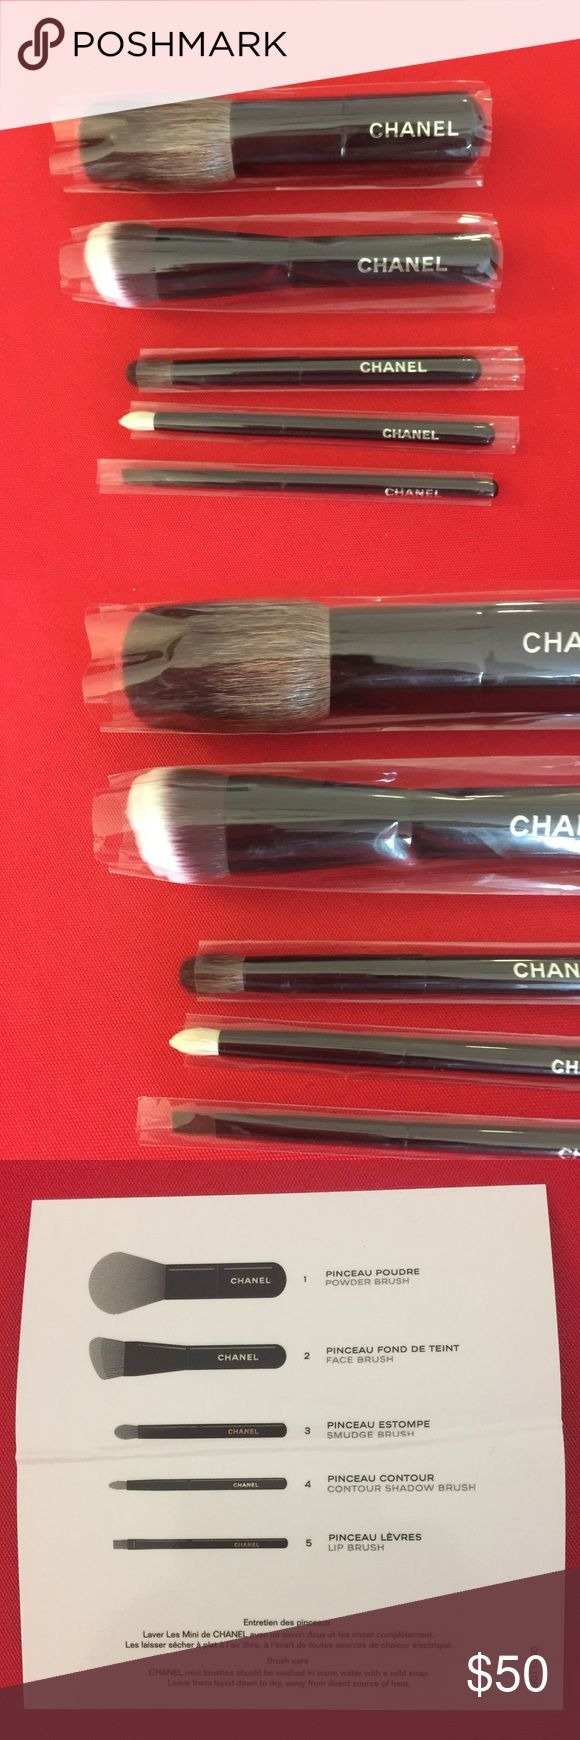 Chanel Mini Travel Brush Set Set of 5 Chanel Mini Travel Brush Set From Holiday 2016             Les Minis De Chanel. No Box. No Tags. Unused/New.               Mini Travel Set Includes: powder brush, face brush,            smudge brush, contour shadow brush and lip brush                  (I Originally Bought 2 Sets, Decided To Sell This One)                 *Offers Welcome* CHANEL Makeup Brushes & Tools